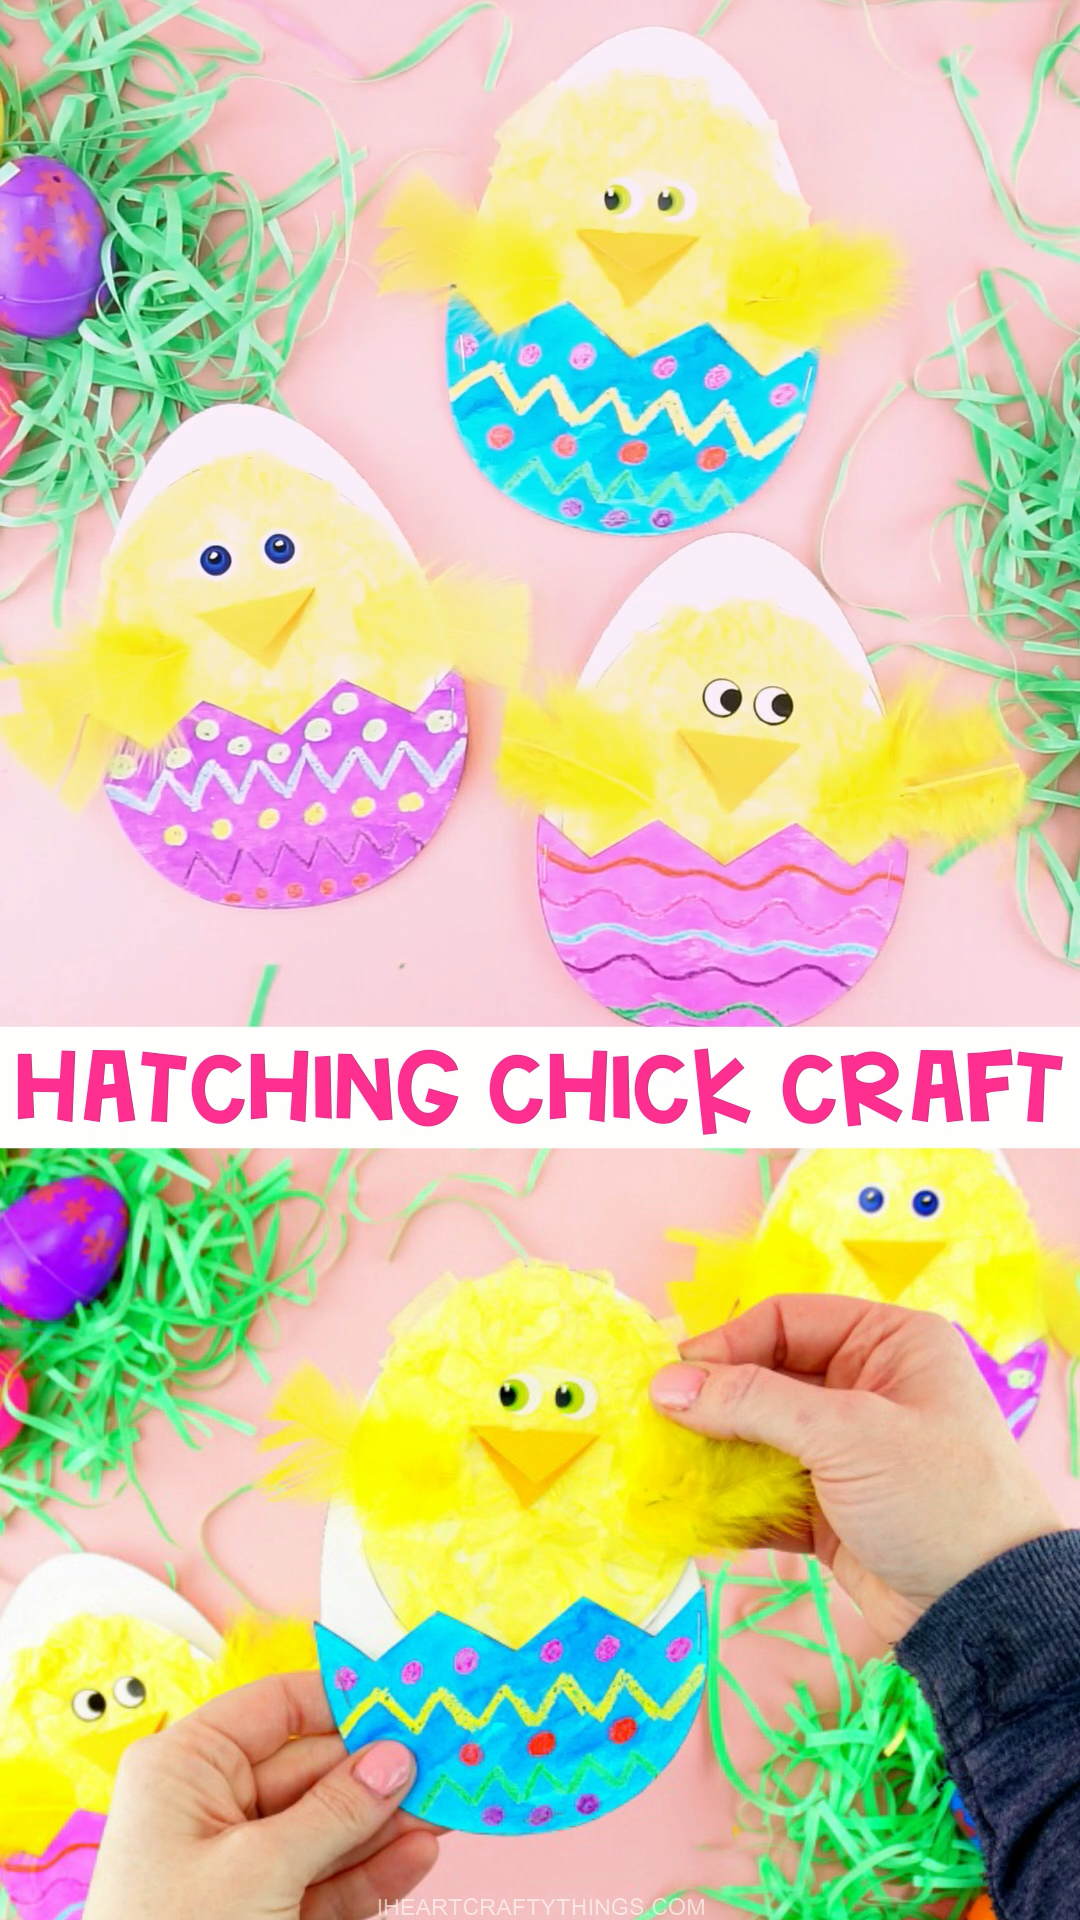 Hatching Chick Easter Craft for Kids -   - #chick #craft #diyhomecrafts #easter #hatching #homediyprojects #Houseinterior #Kids